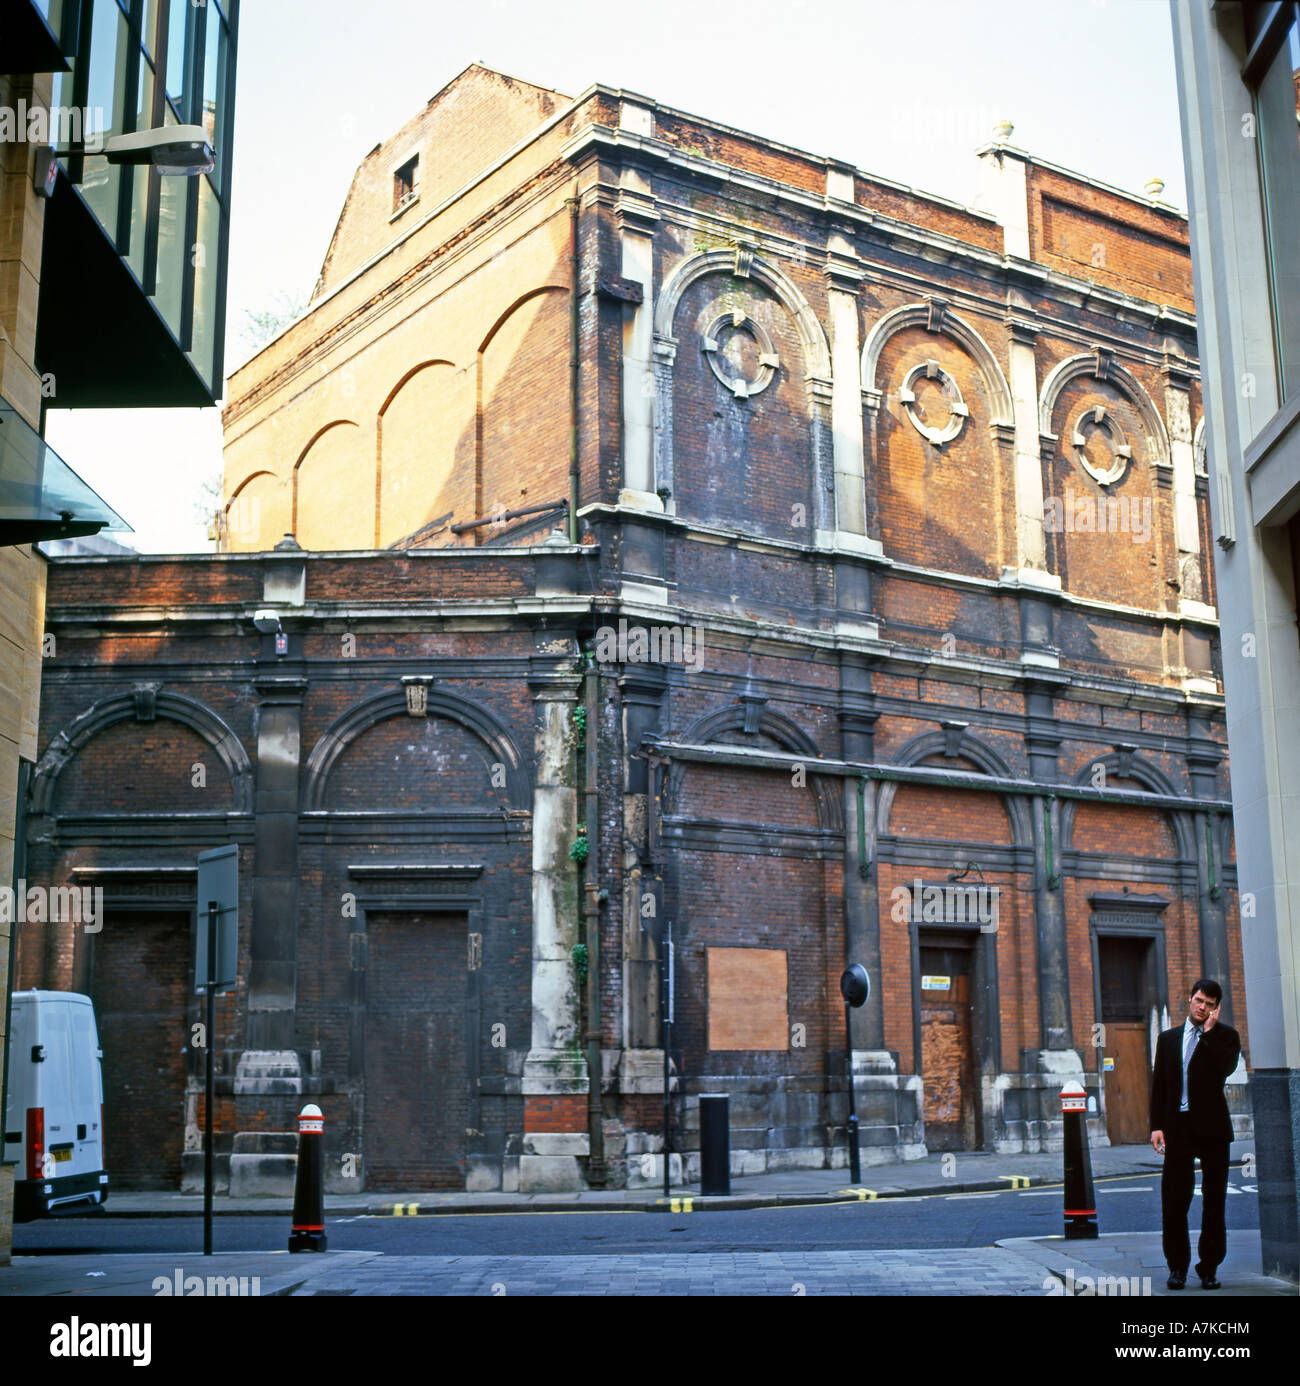 The derelict historic Red House Cold Storage building at Smithfield Meat Market London England UK KATHY DEWITT & The derelict historic Red House Cold Storage building at Smithfield ...